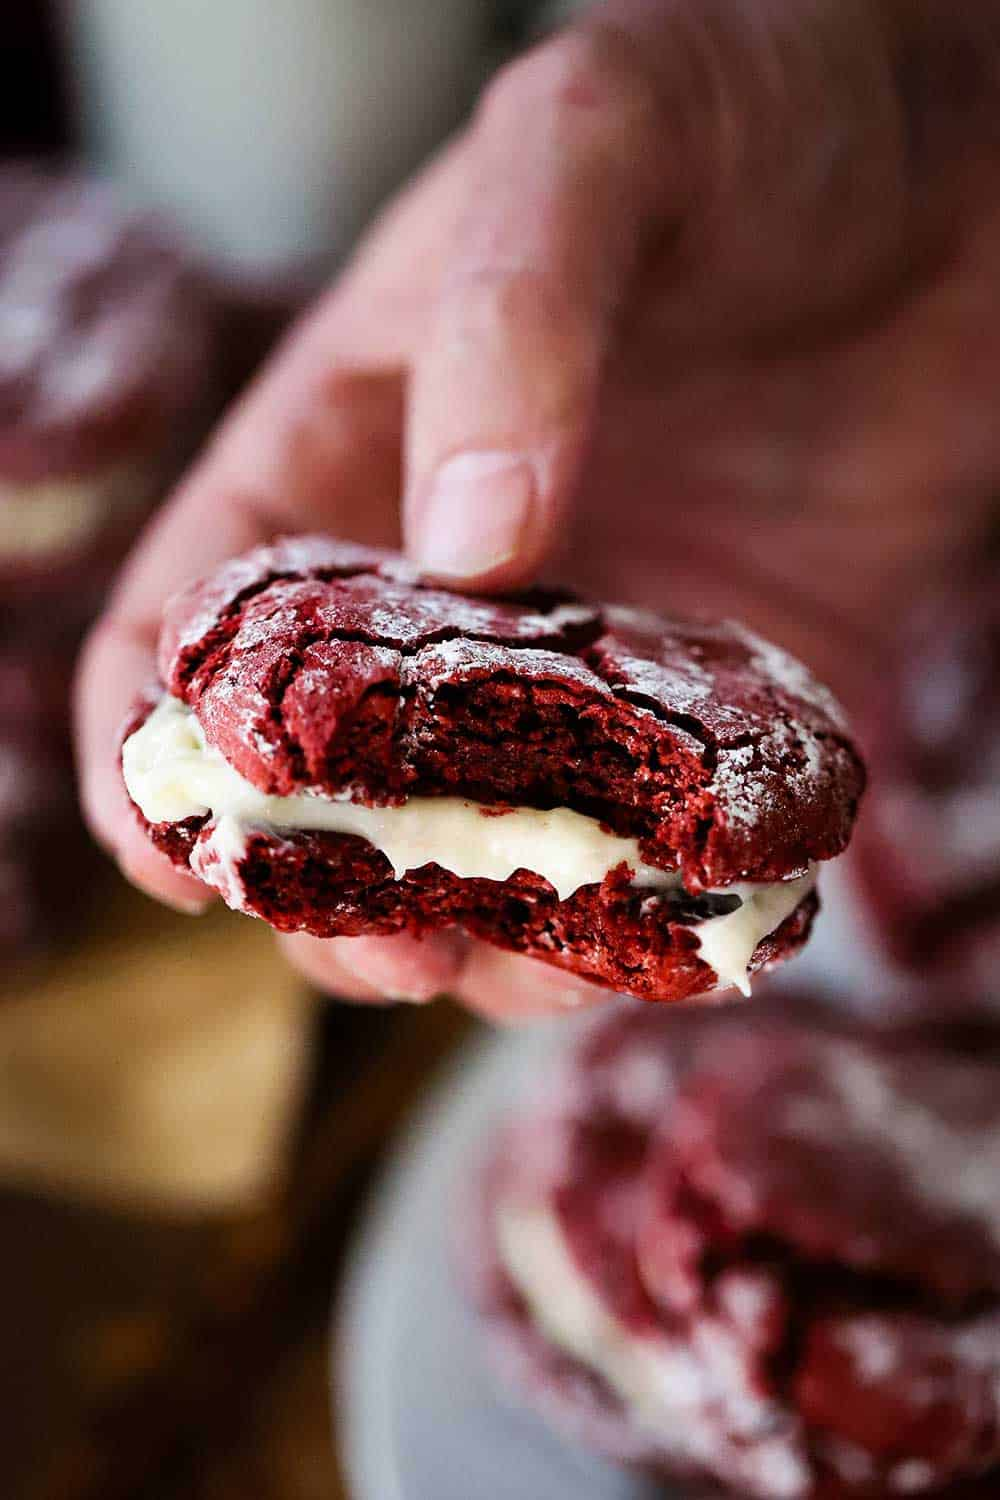 A hand holding a red velvet sandwich cookie with a bite take out of it.